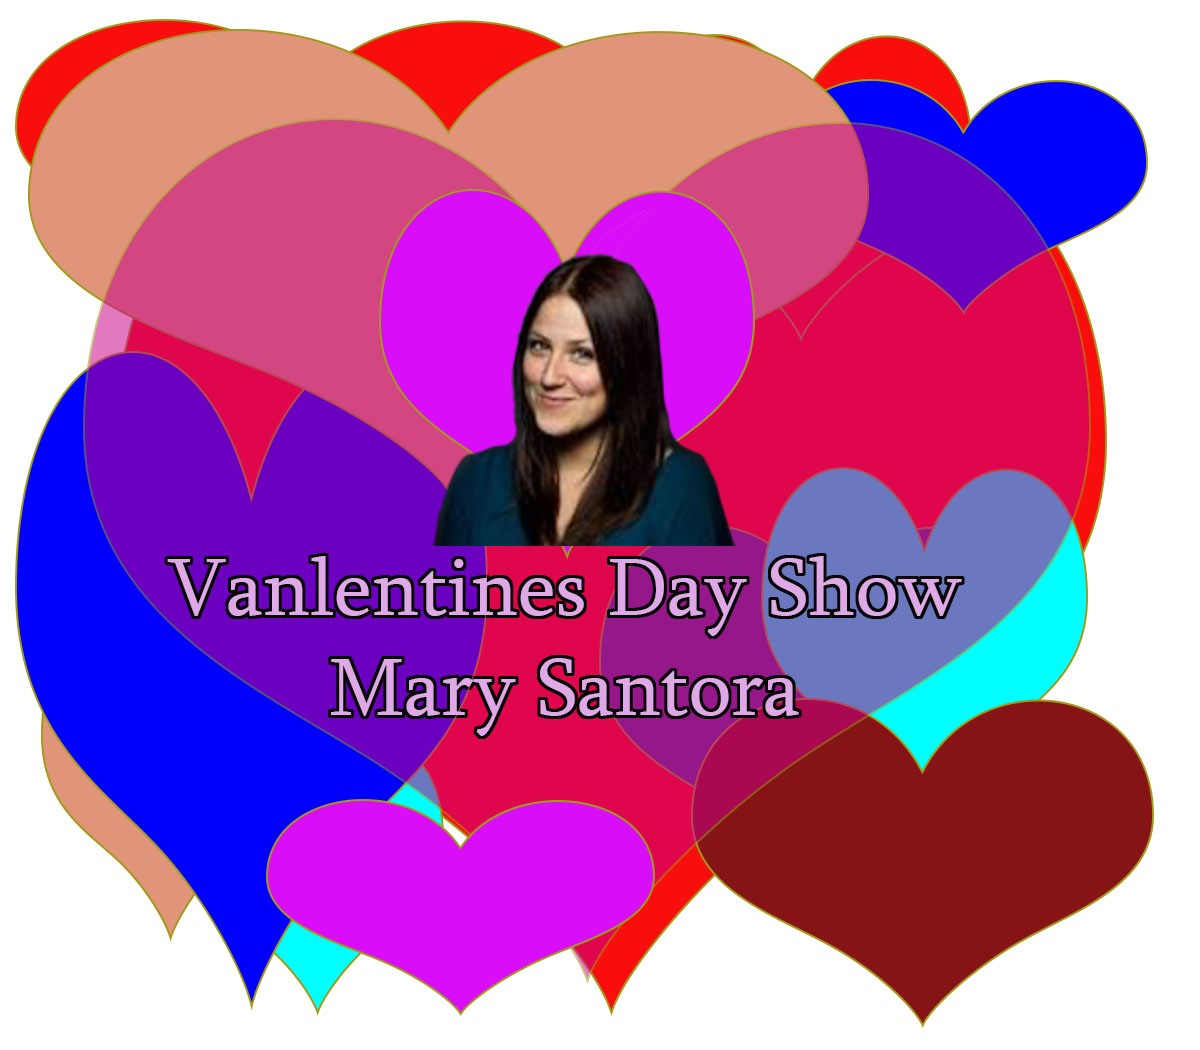 Valentines with Mary Santora 7:30 Show  on Feb 14, 19:30@Funny Stop Comedy Club - Buy tickets and Get information on Funny Stop funnystop.online